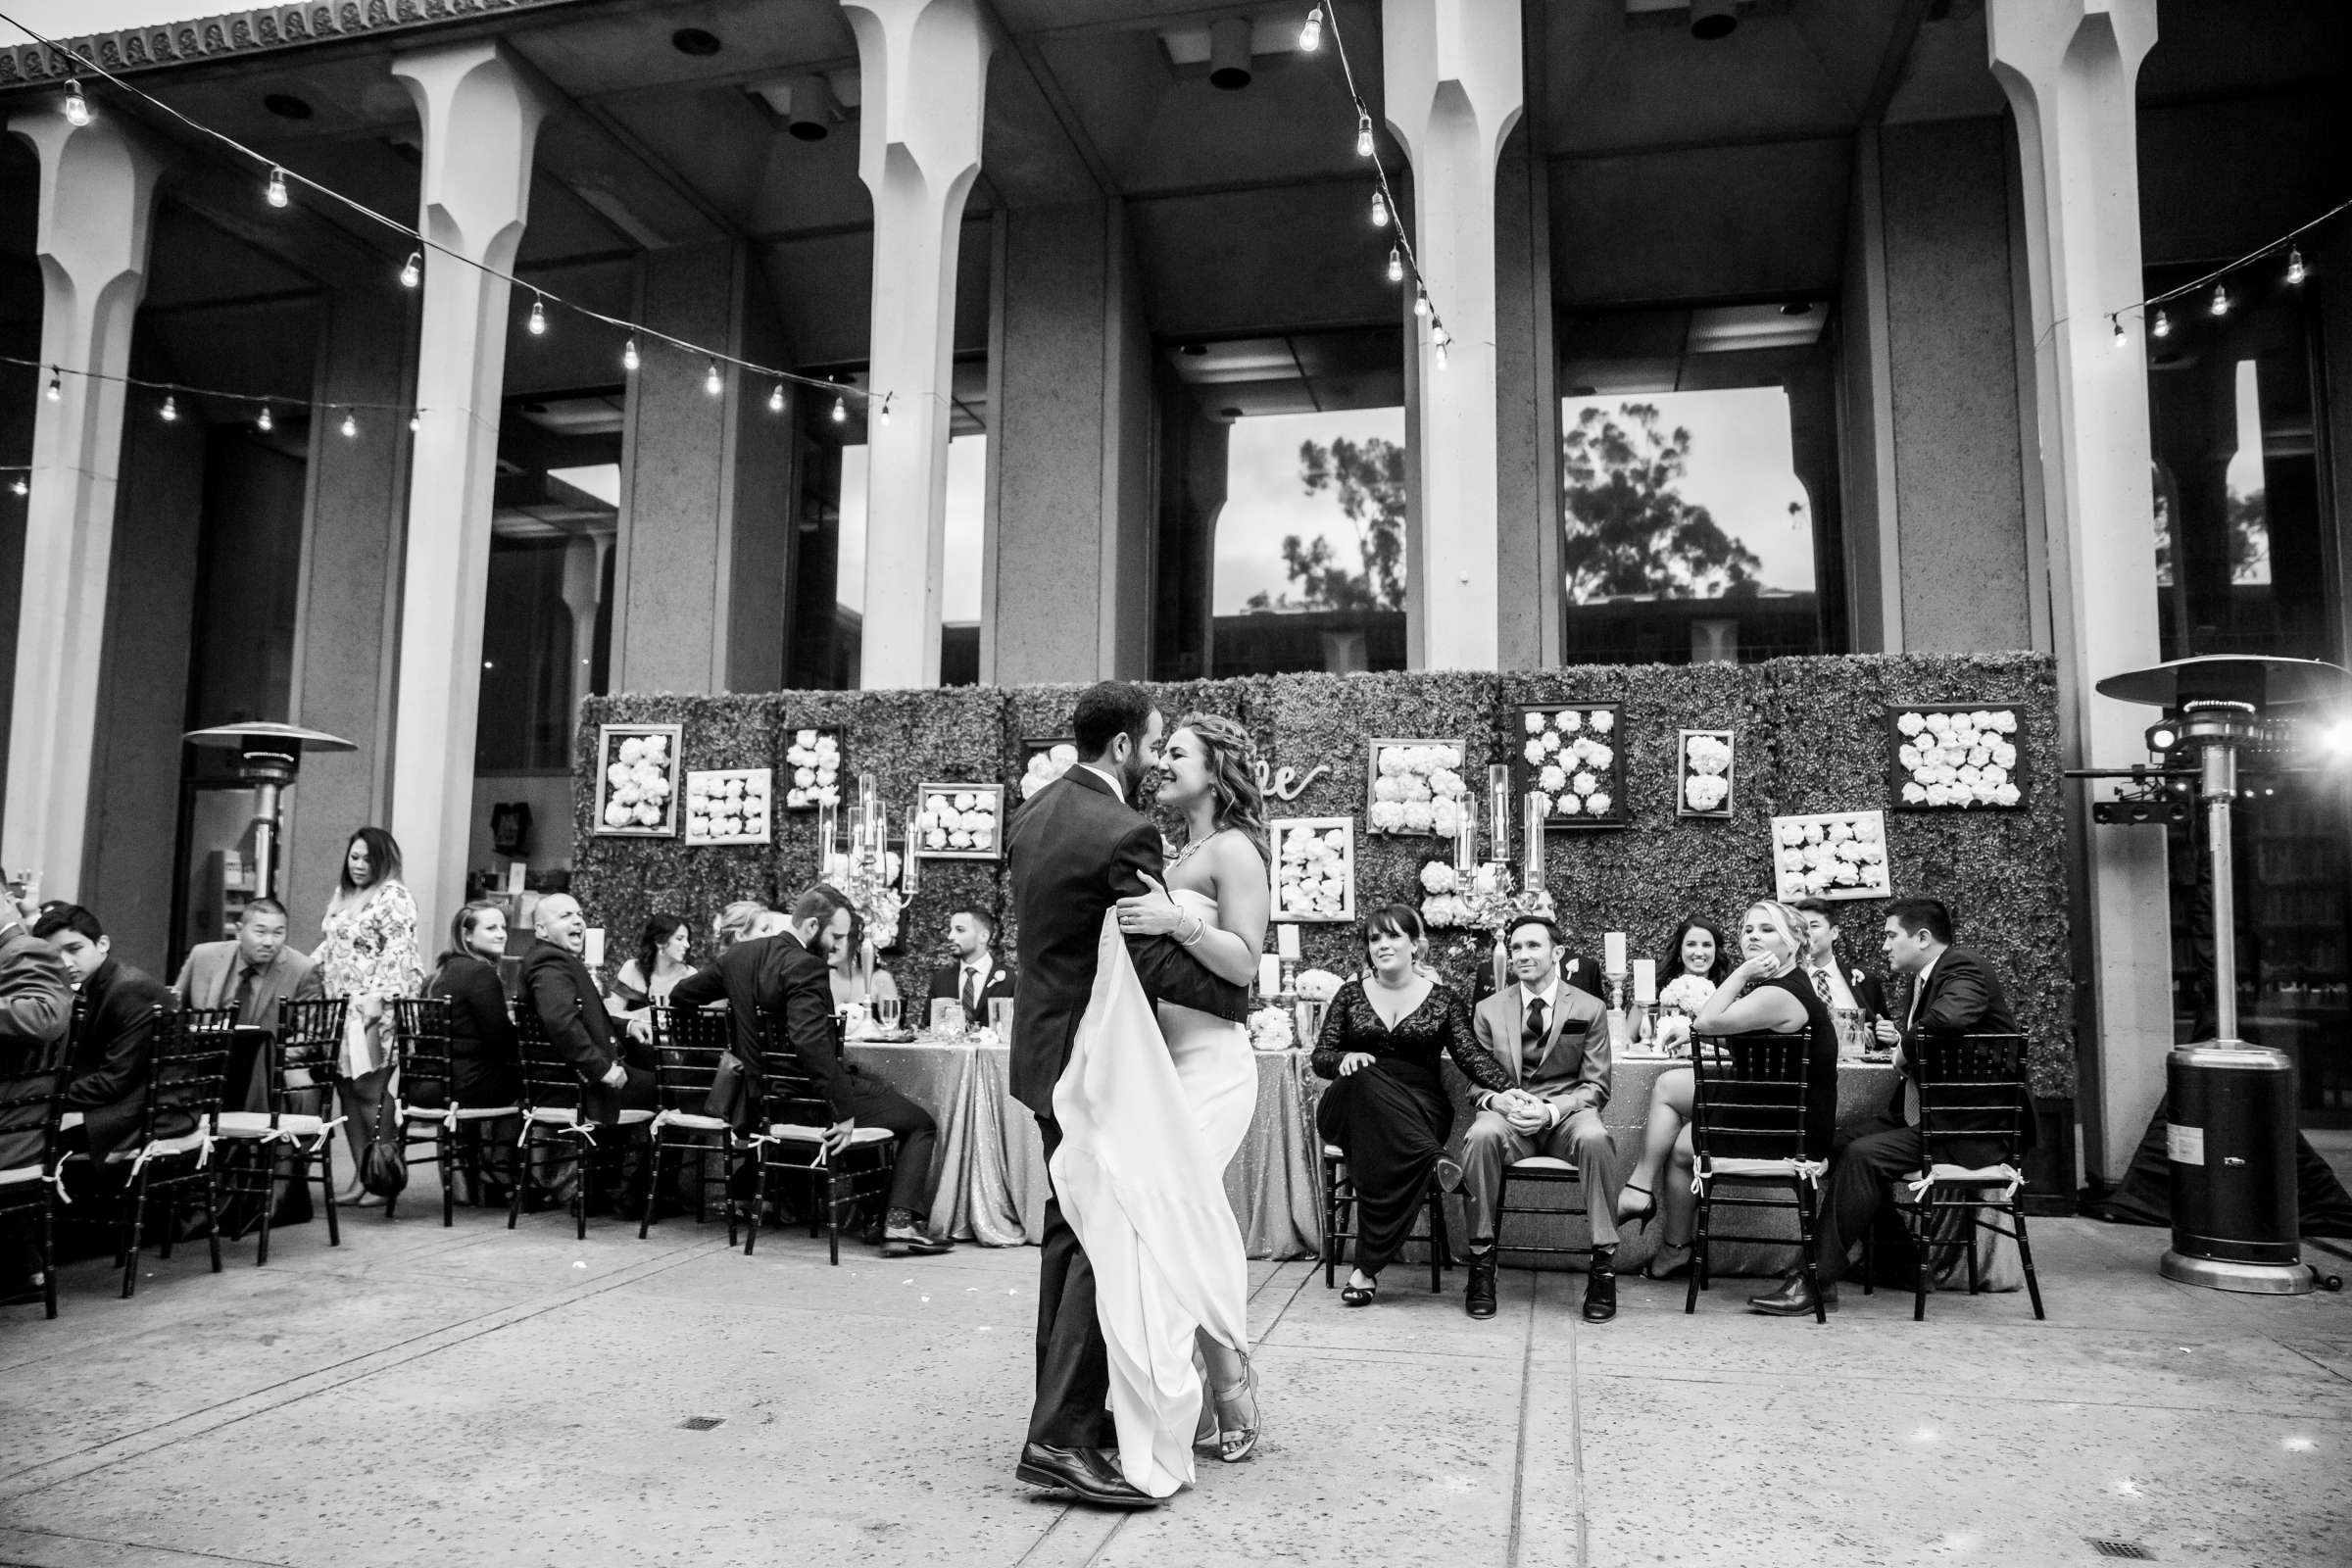 First Dance, Black and White photo at San Diego Museum of Art Wedding coordinated by First Comes Love Weddings & Events, Ruthie and Larry Wedding Photo #236843 by True Photography